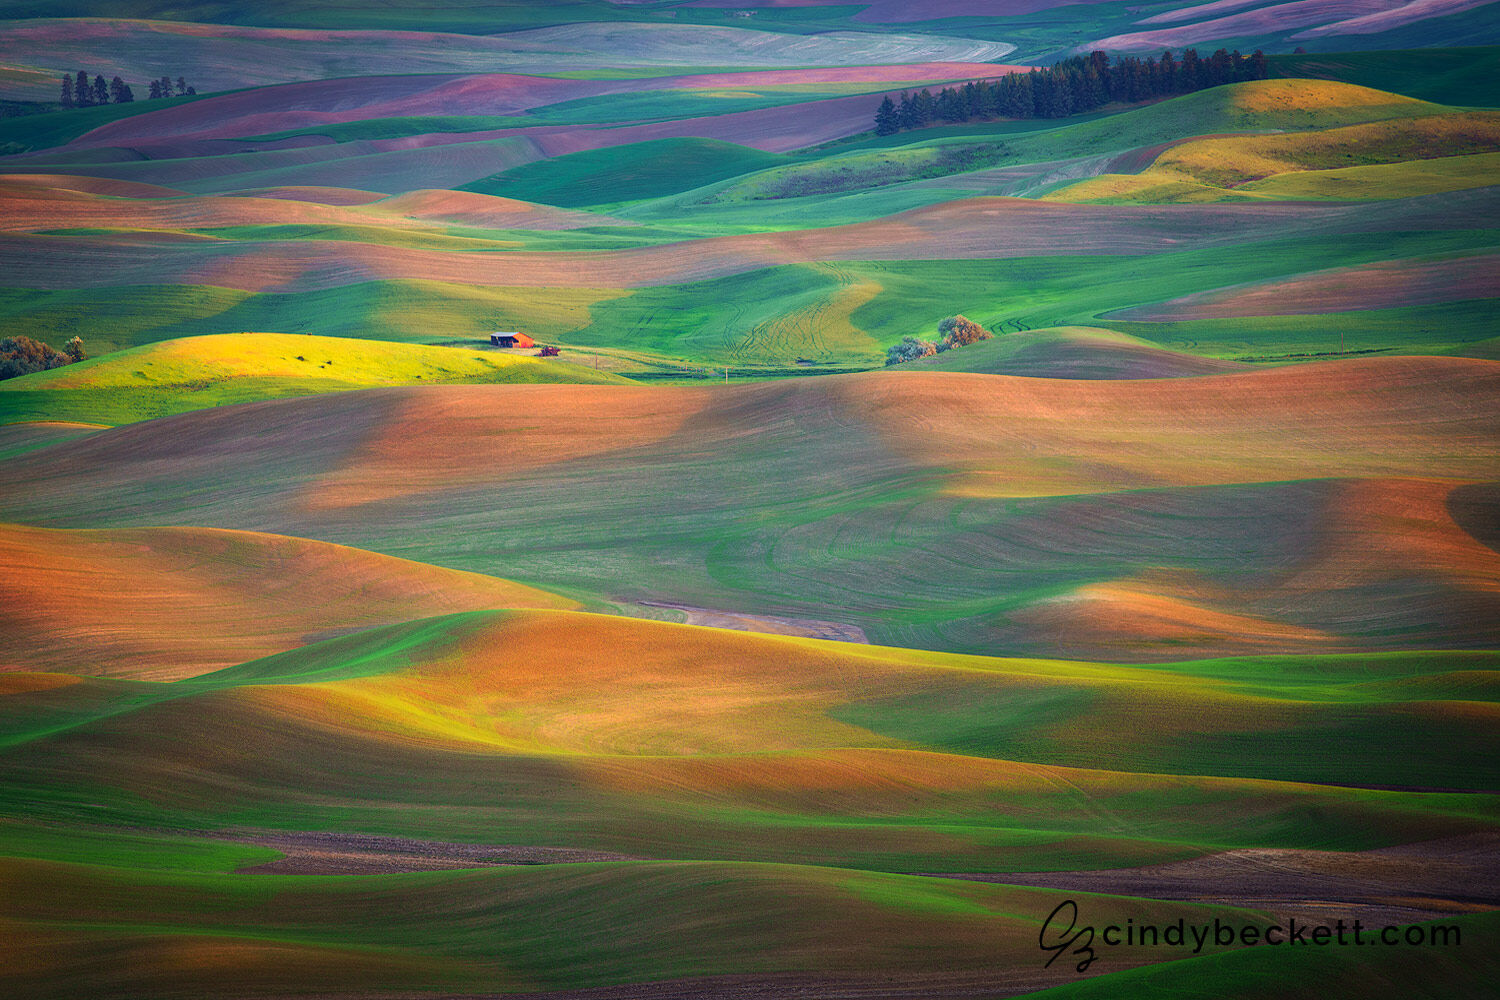 Sunset light defines the beautiful patterns and shapes and colors of the rolling hills of canola, legumes, and spring wheat in this fertile farming region.